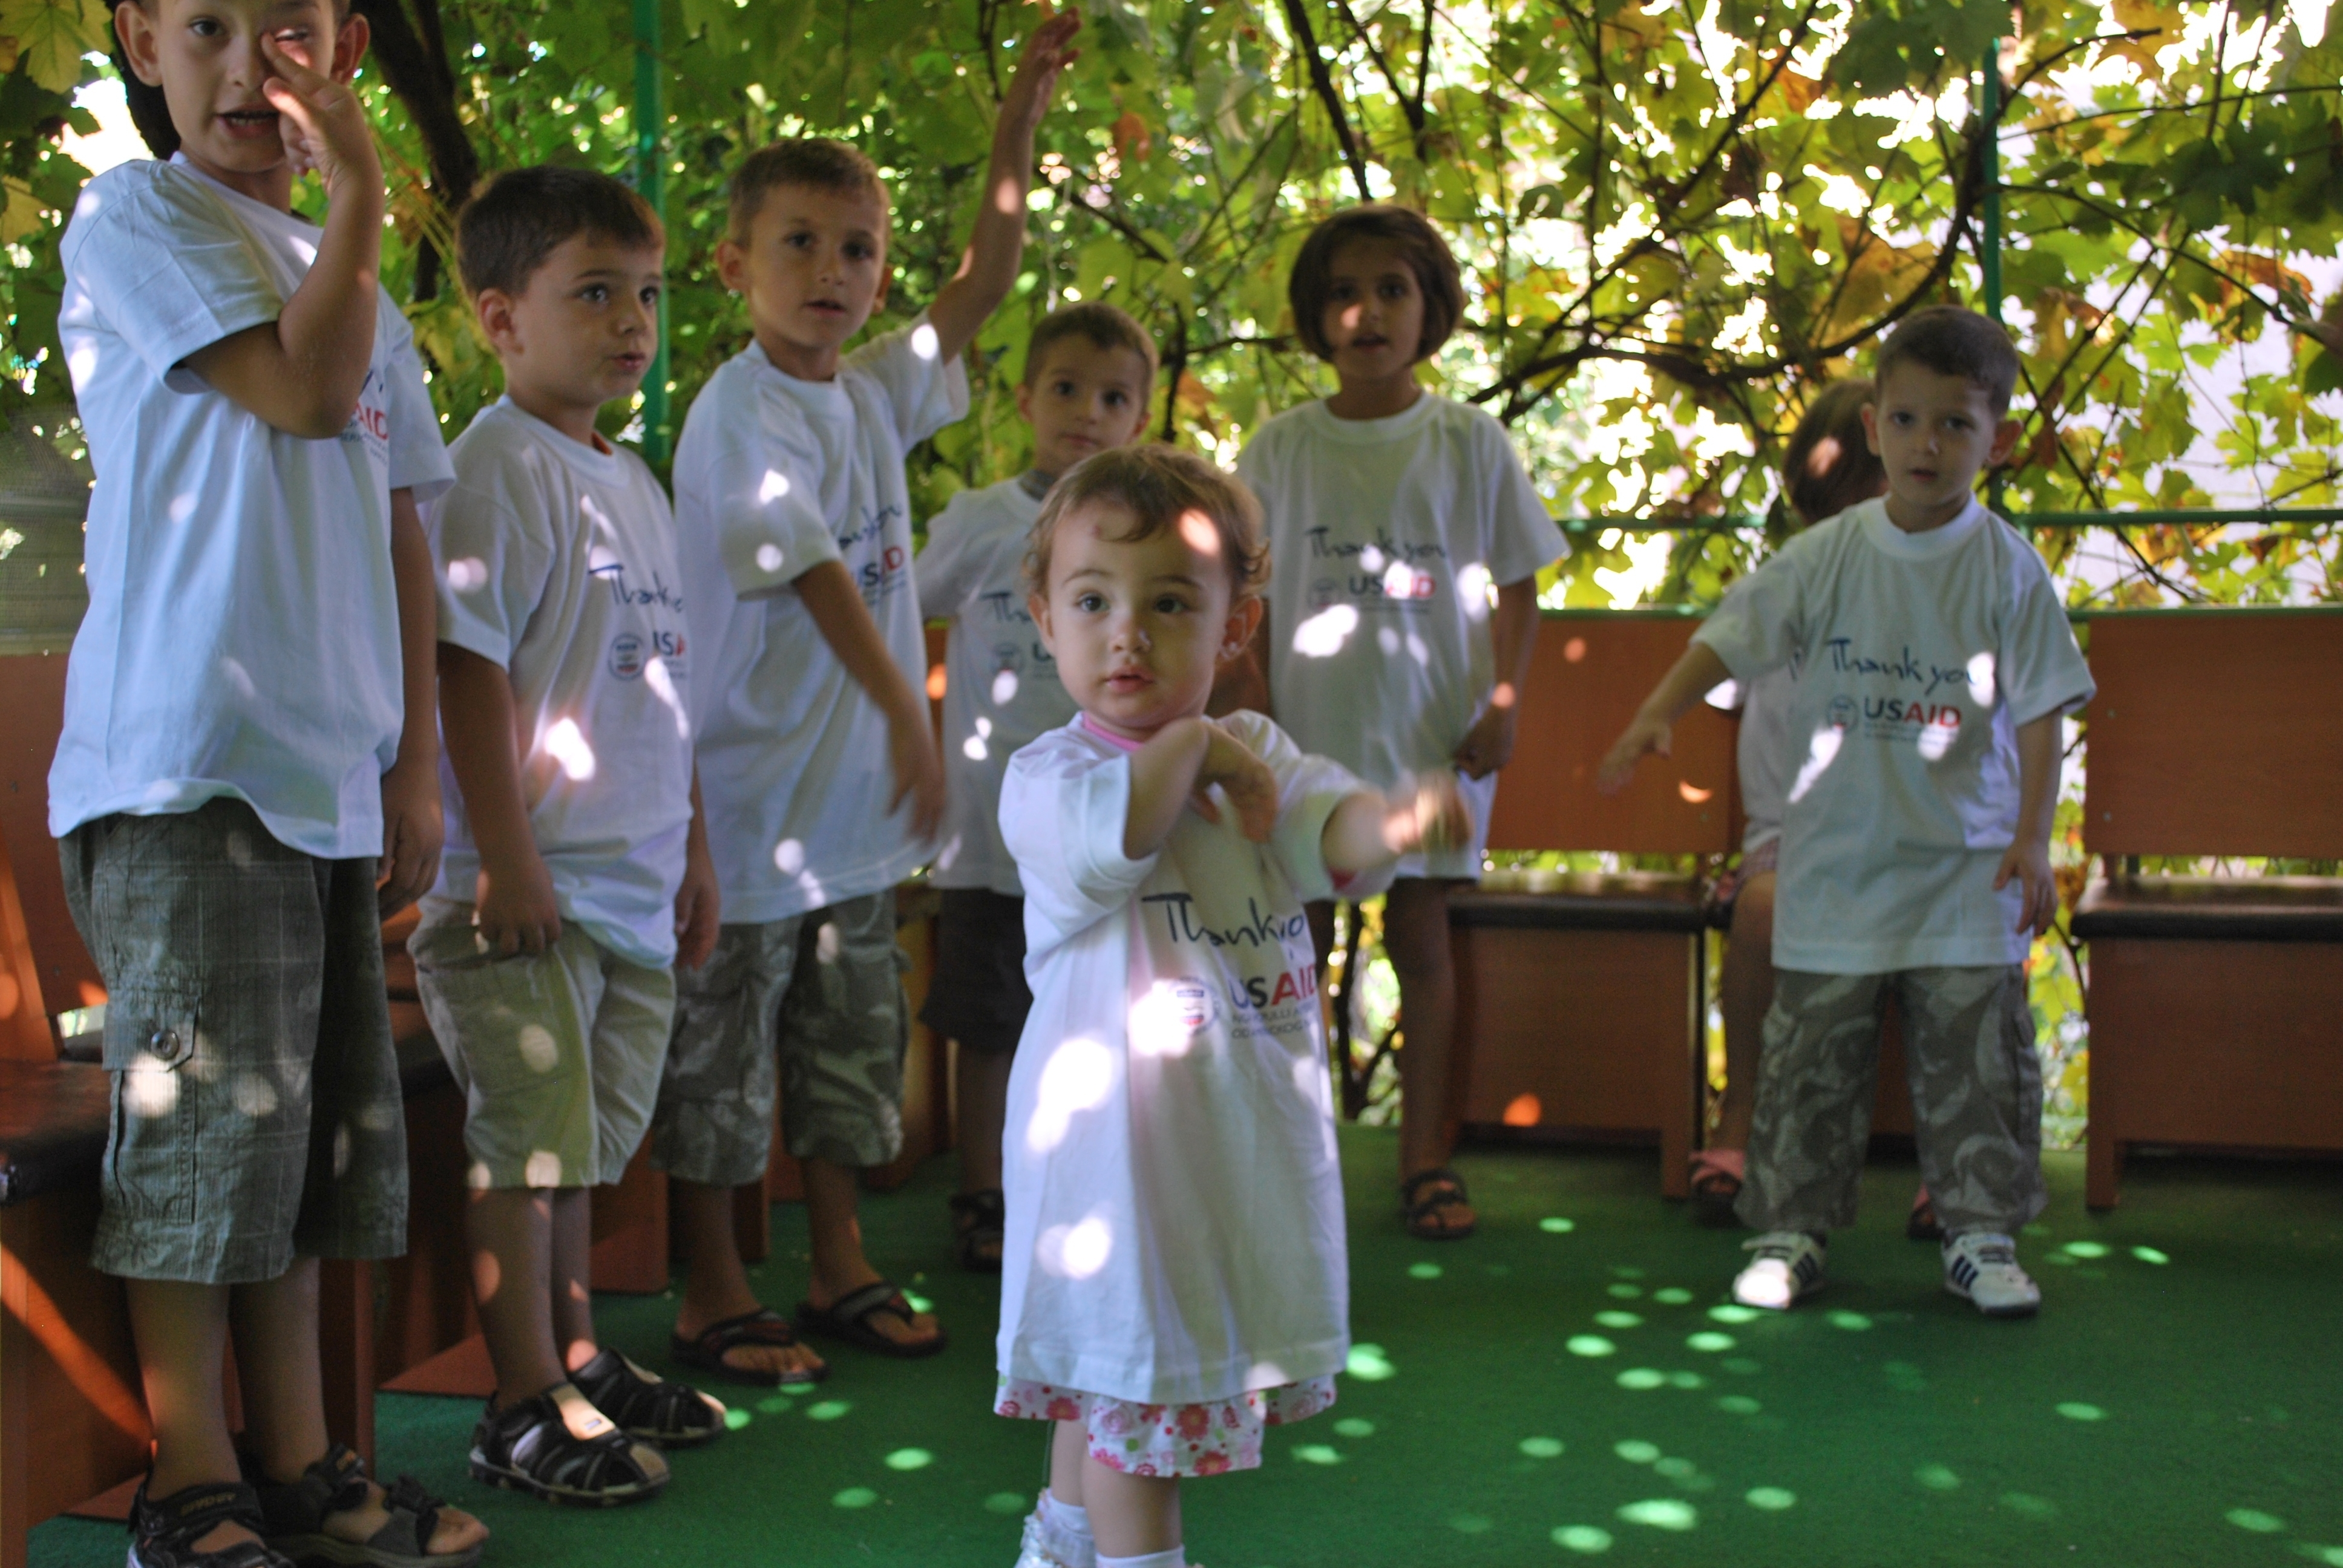 Children at the BAMBI daycare center playing in the garden during a USAID staff visit.